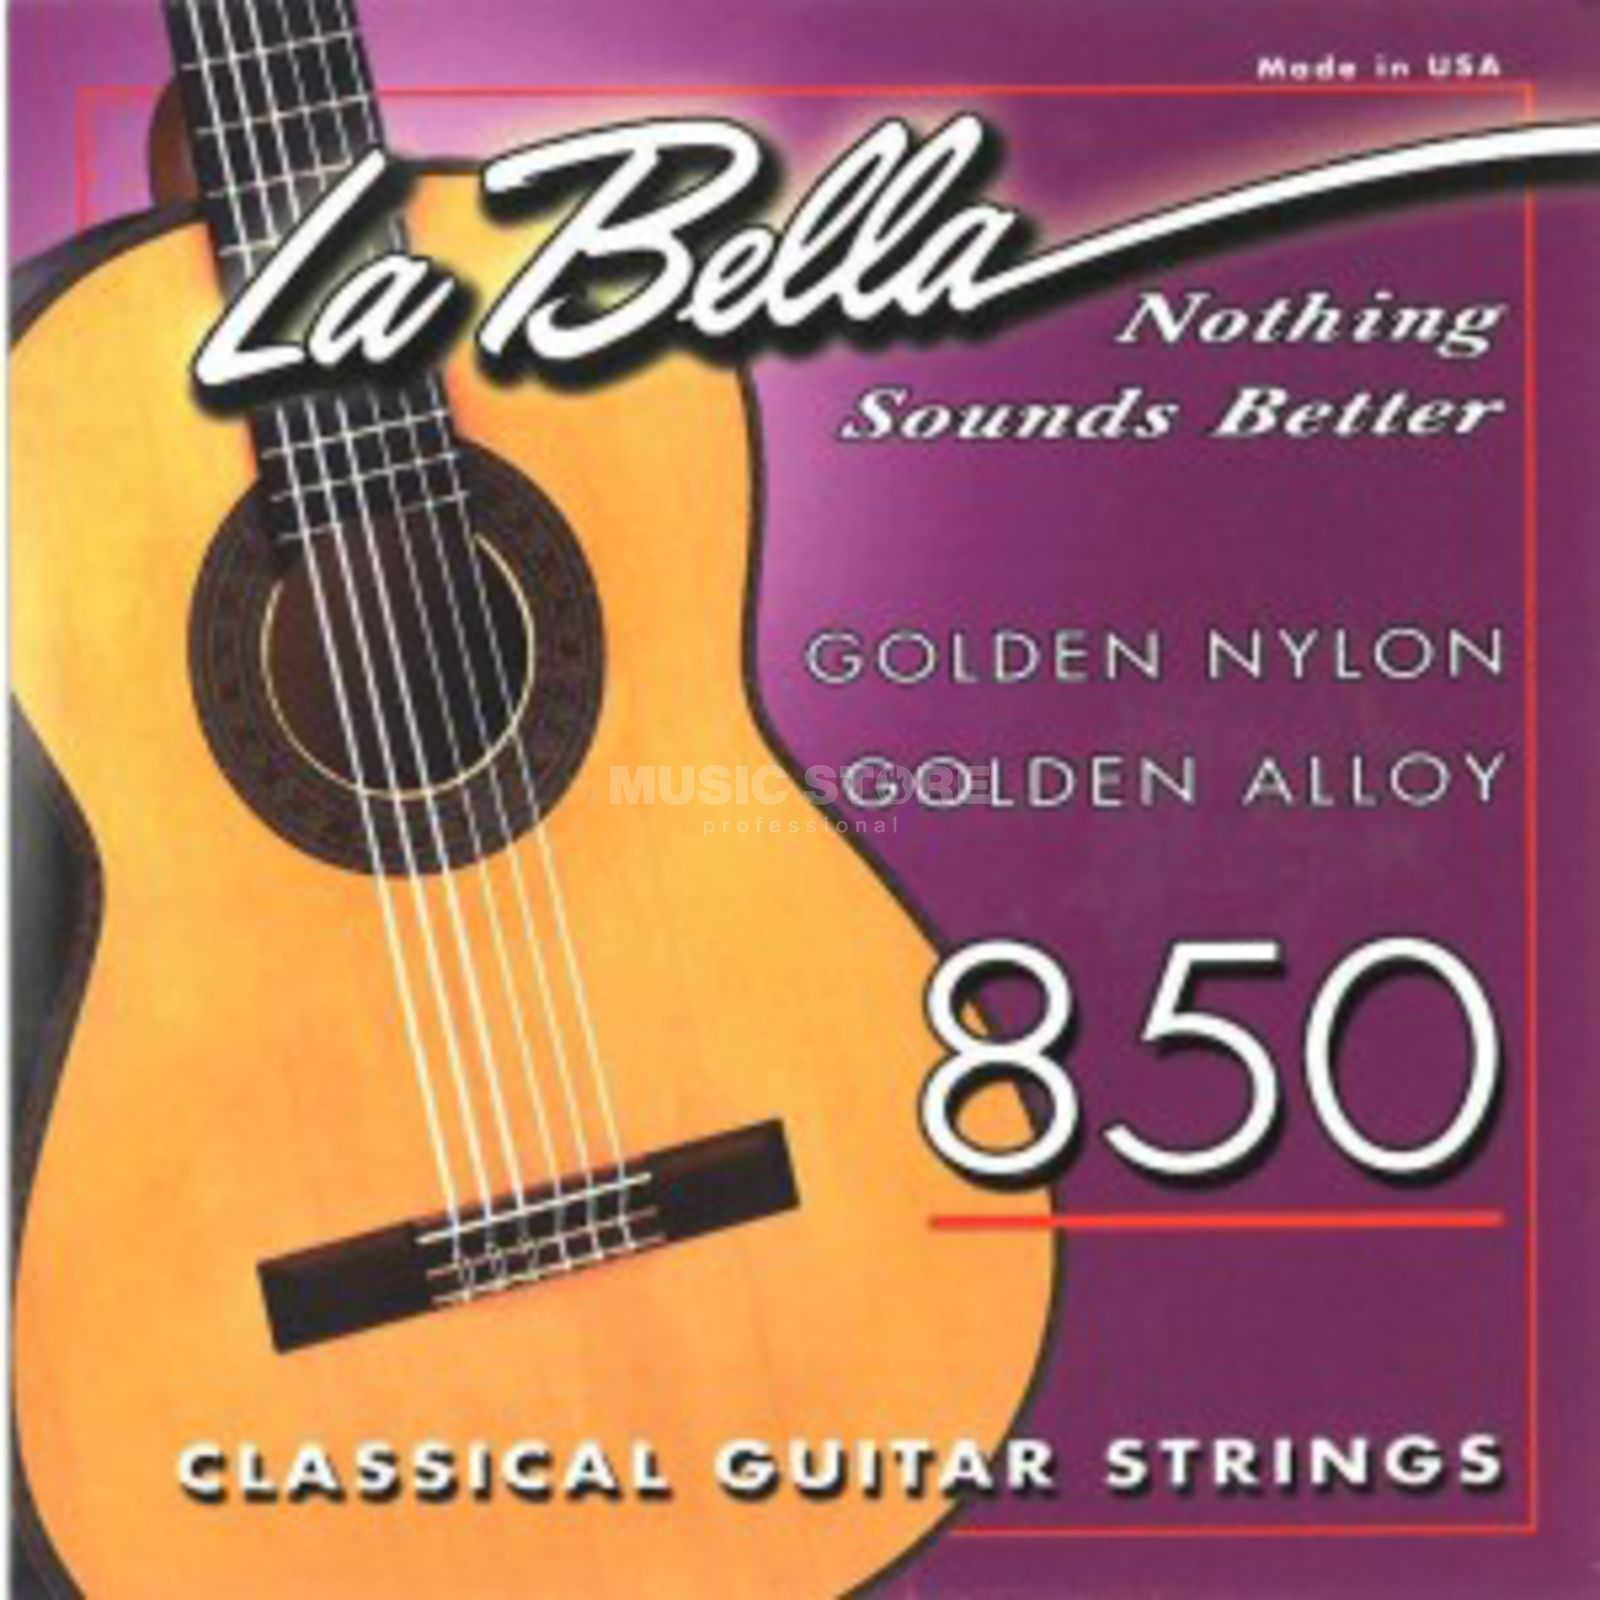 La Bella 850 Nylon Strings Golden Alloy Product Image